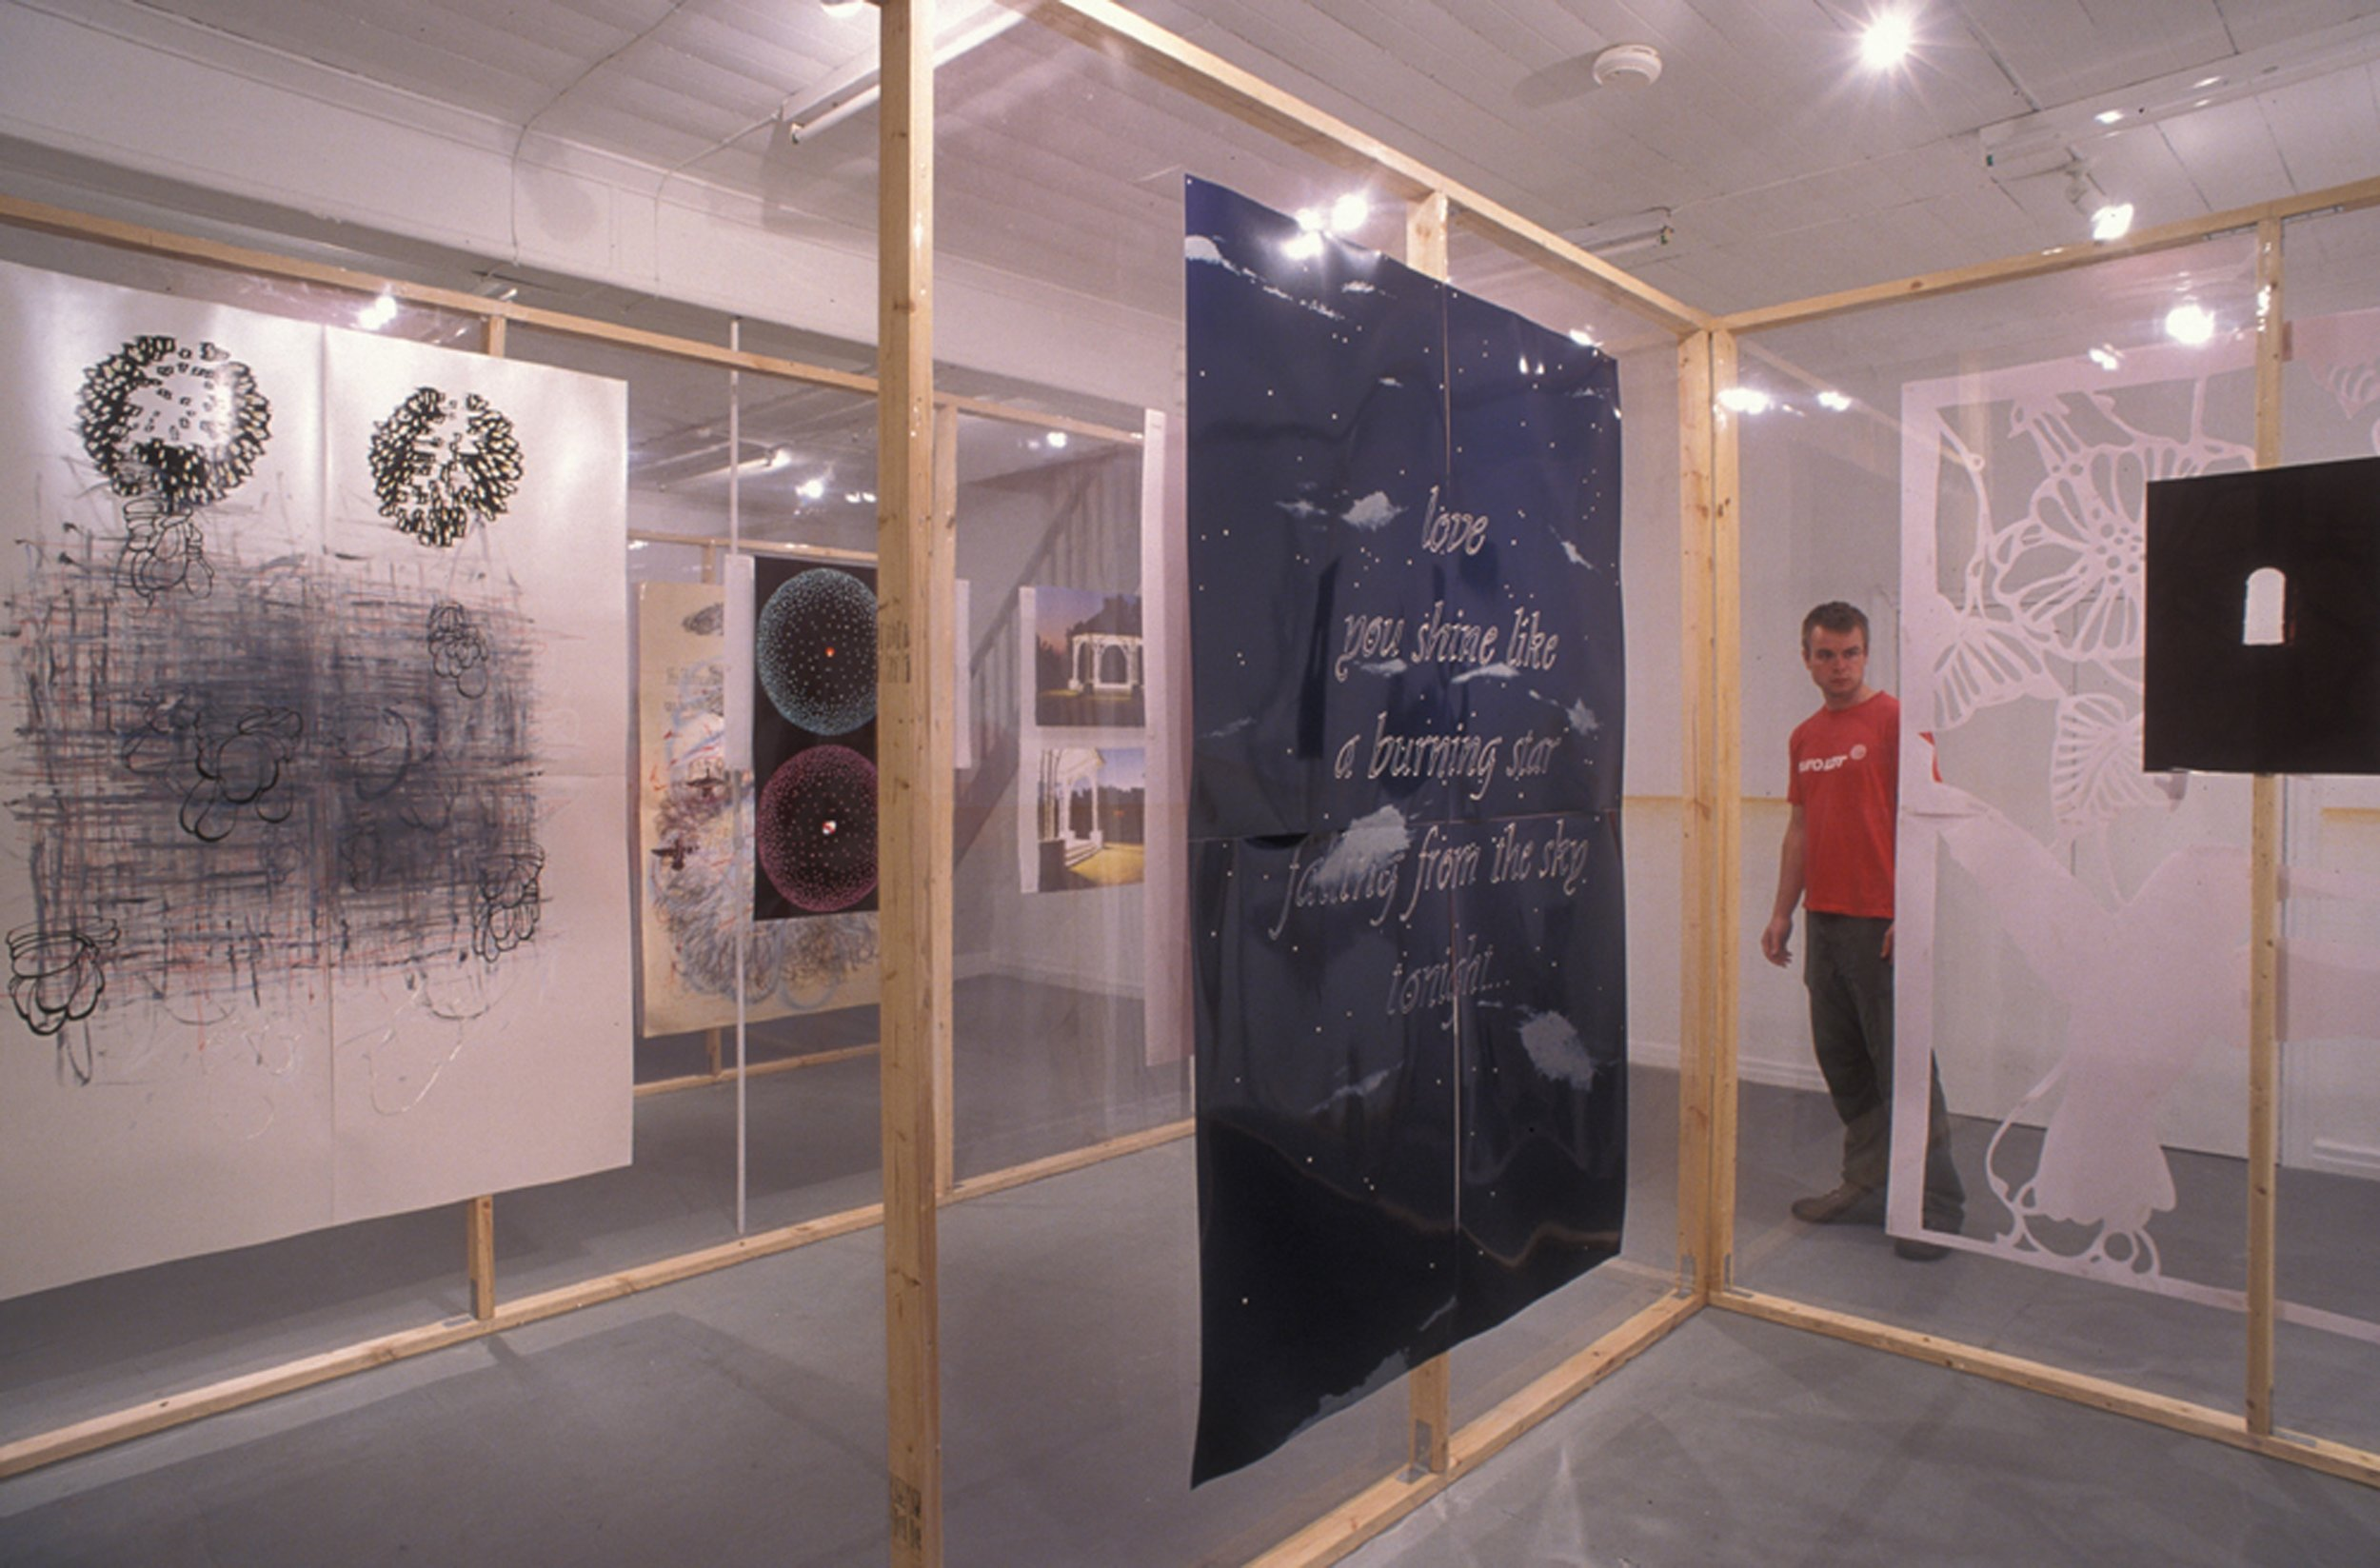 Peter Alwast,  Working Like a Tiger , installation view, August 2003. Photo by Rod Bucholtz. Image courtesy of Grant Stevens.